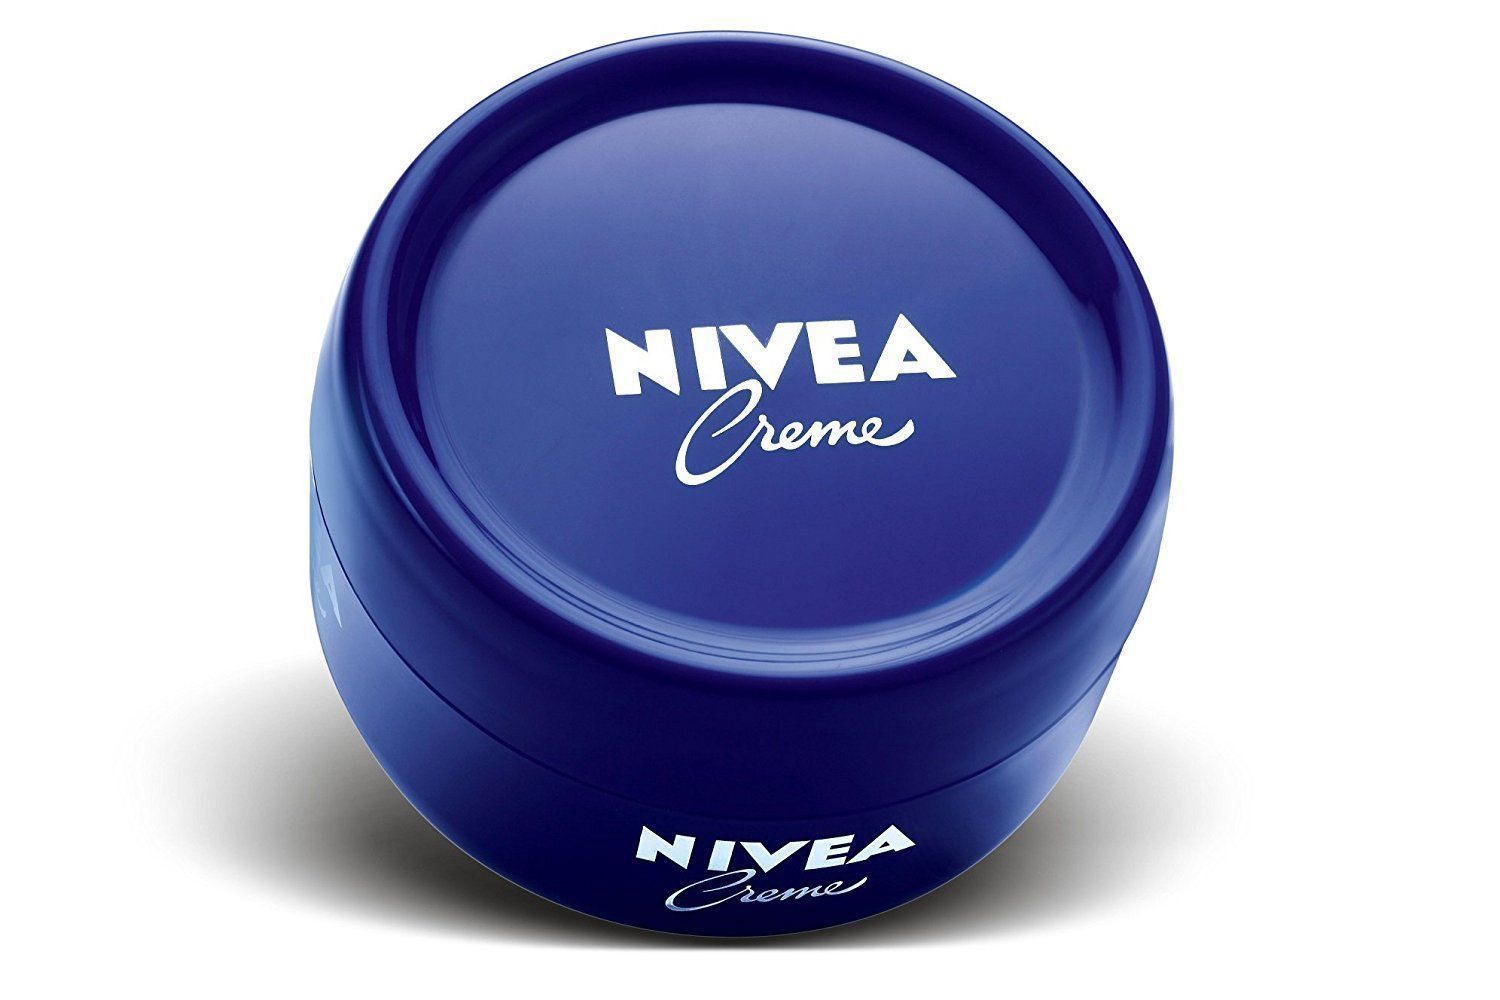 Nivea Crème Original Moisturizer For soft and smooth Skin 200ml/FREE SHIP image 2